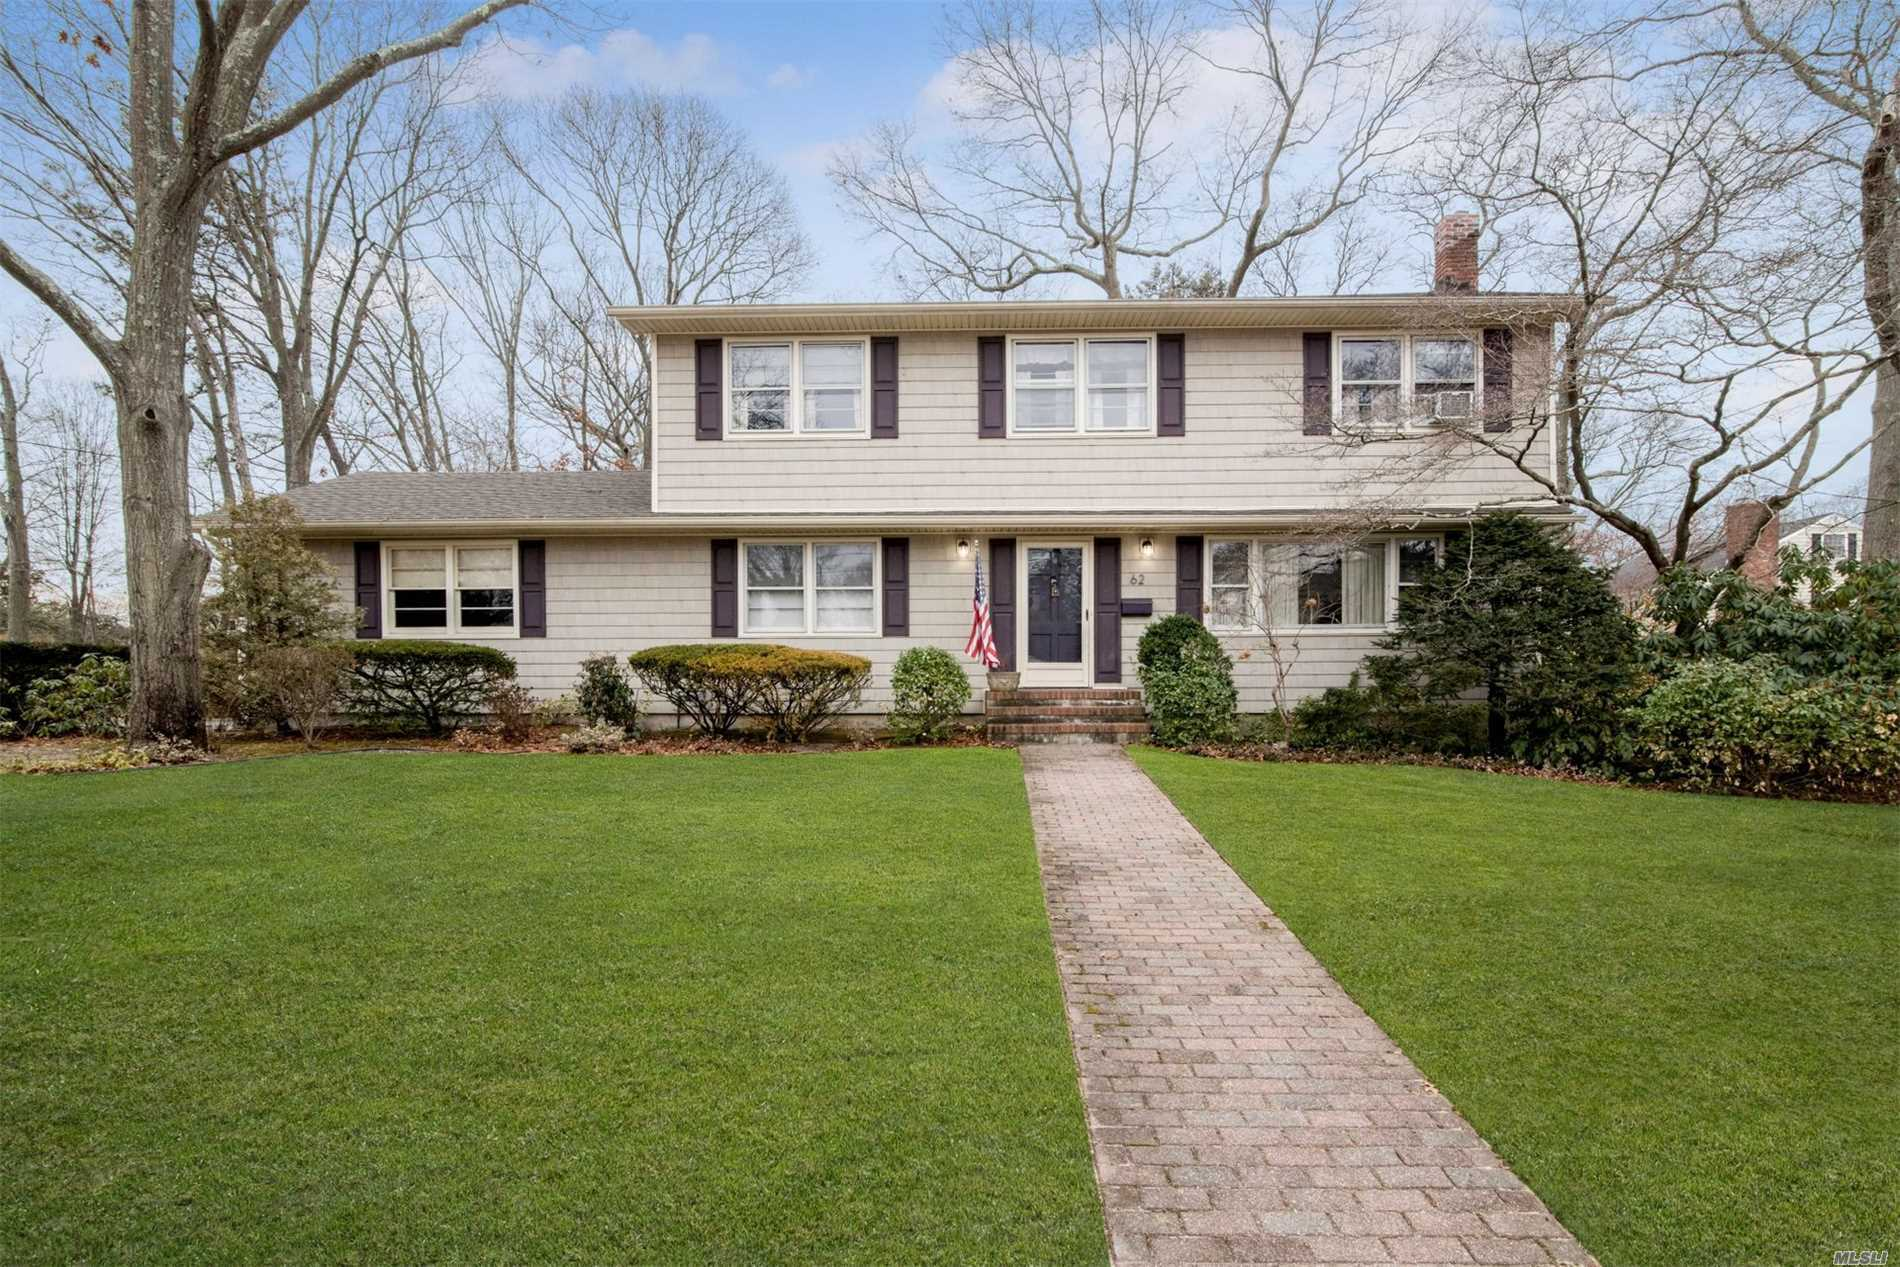 62 Howard St - Patchogue, New York